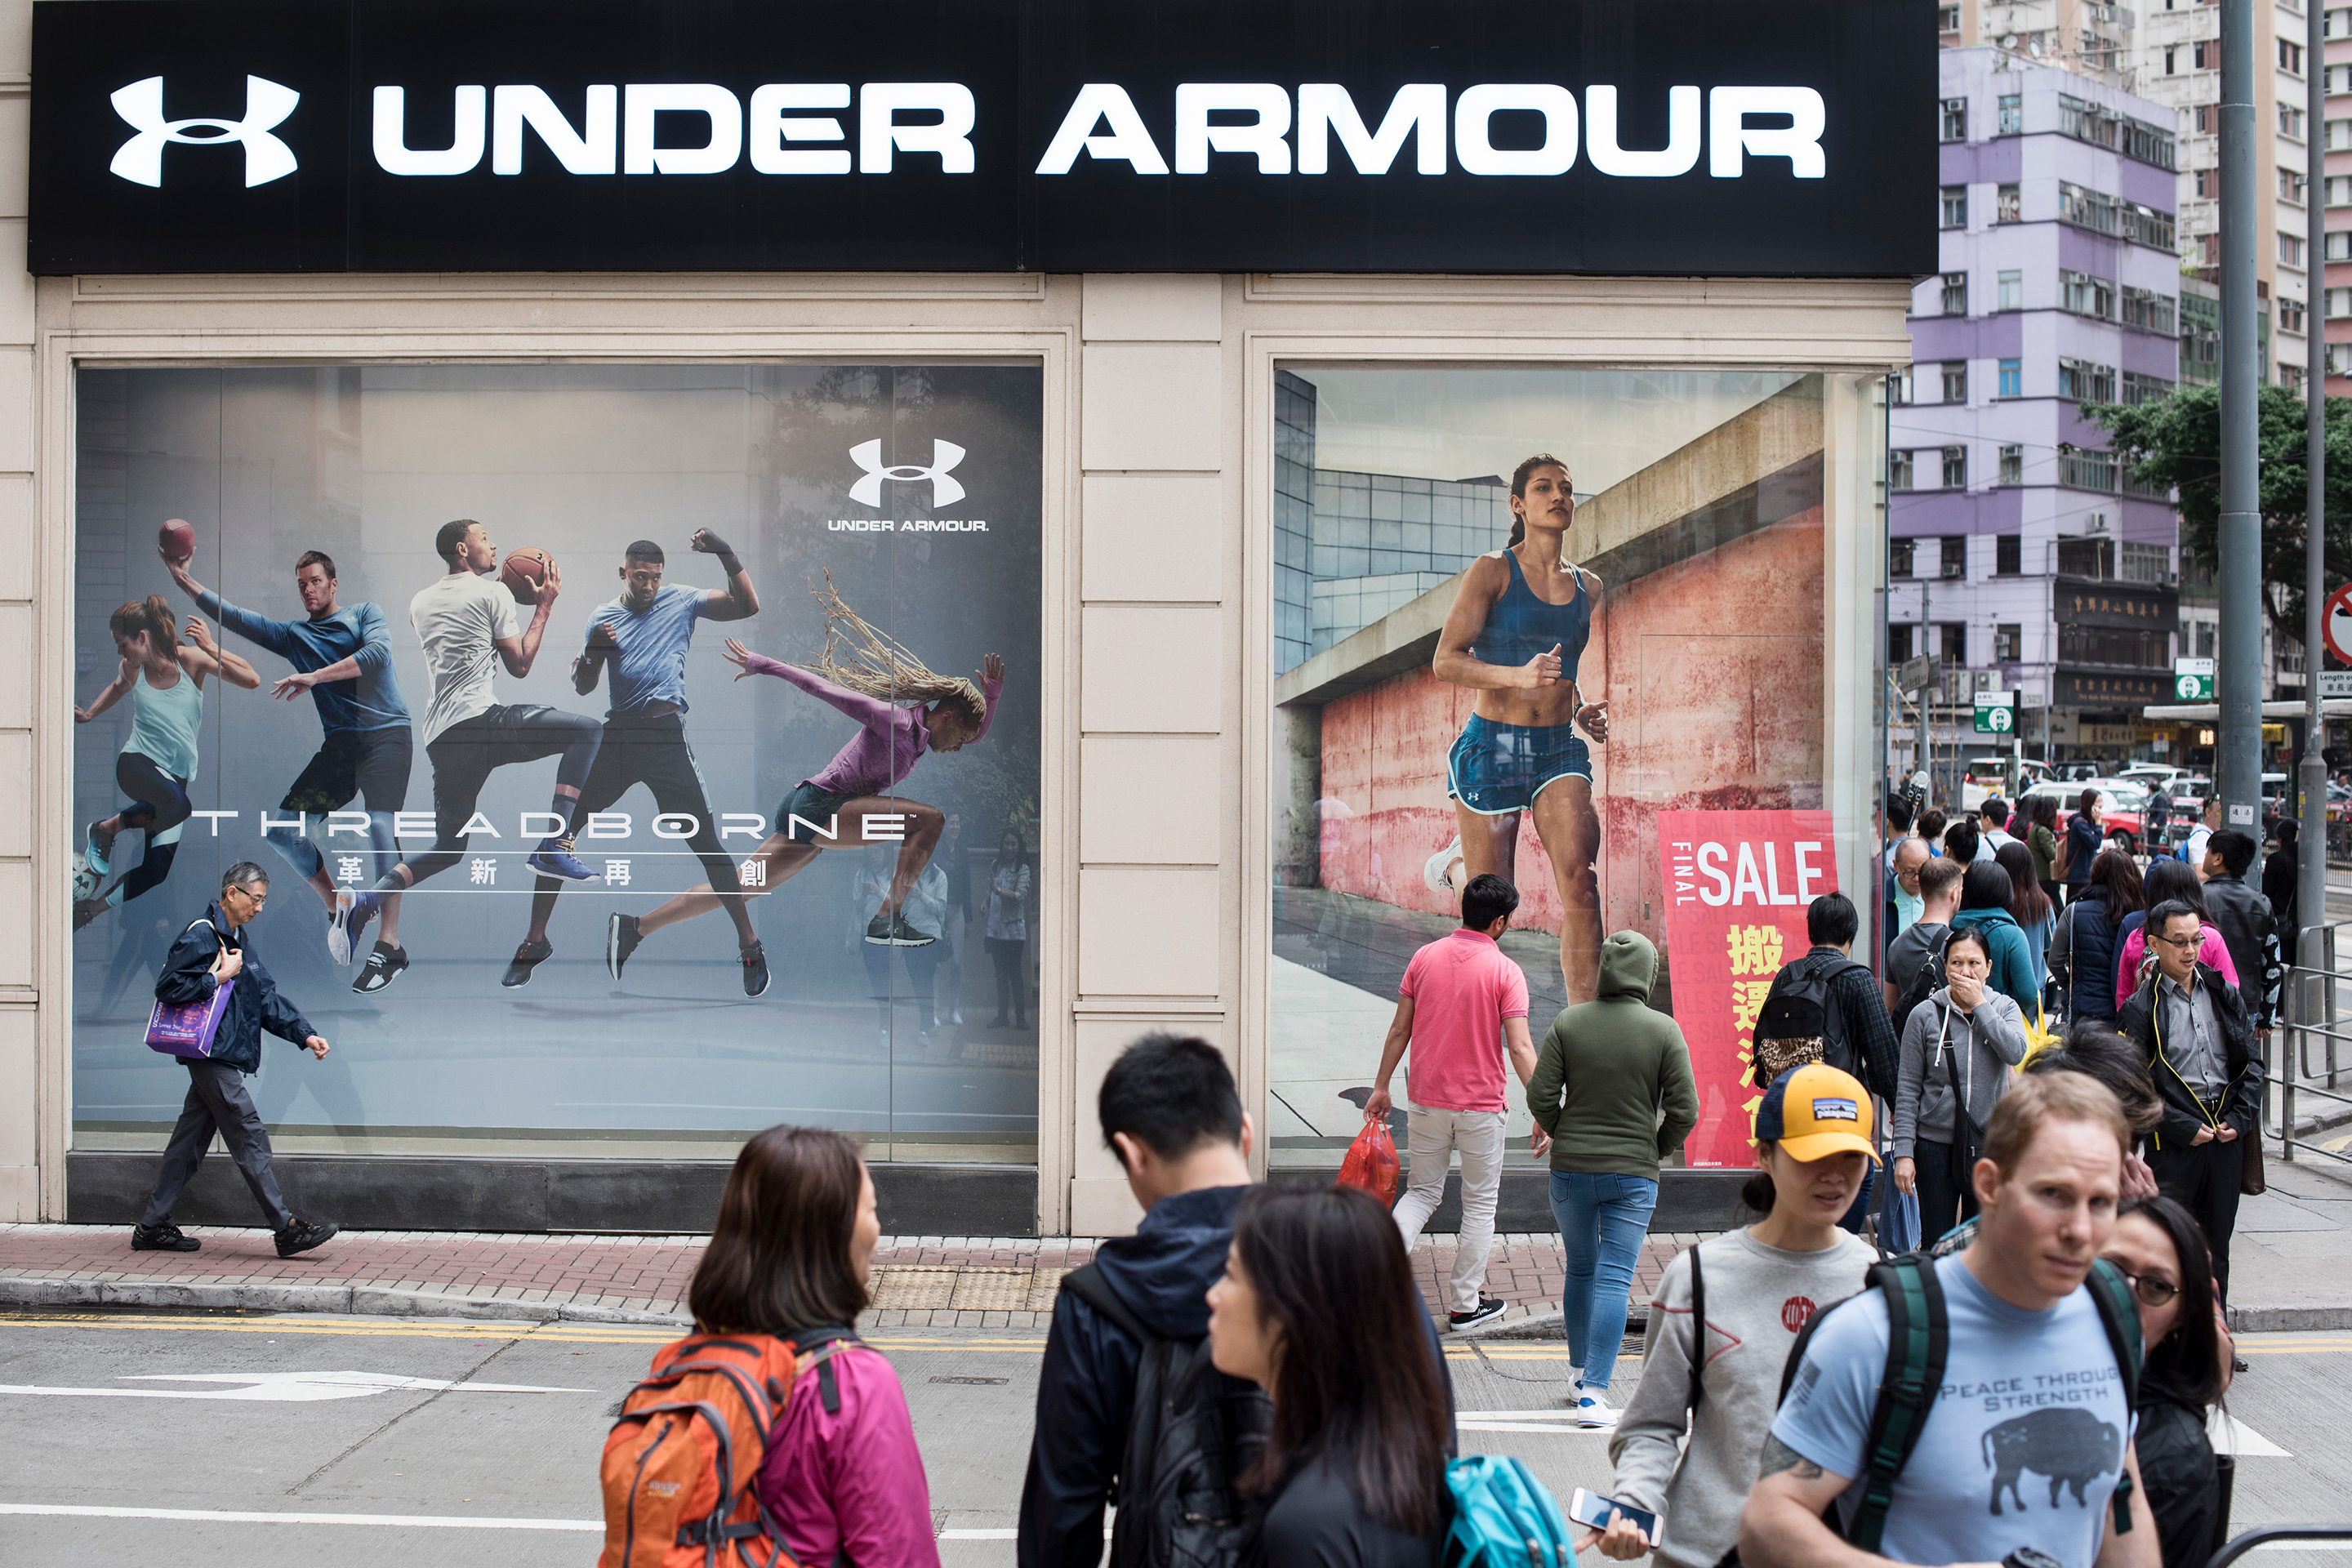 under armour in